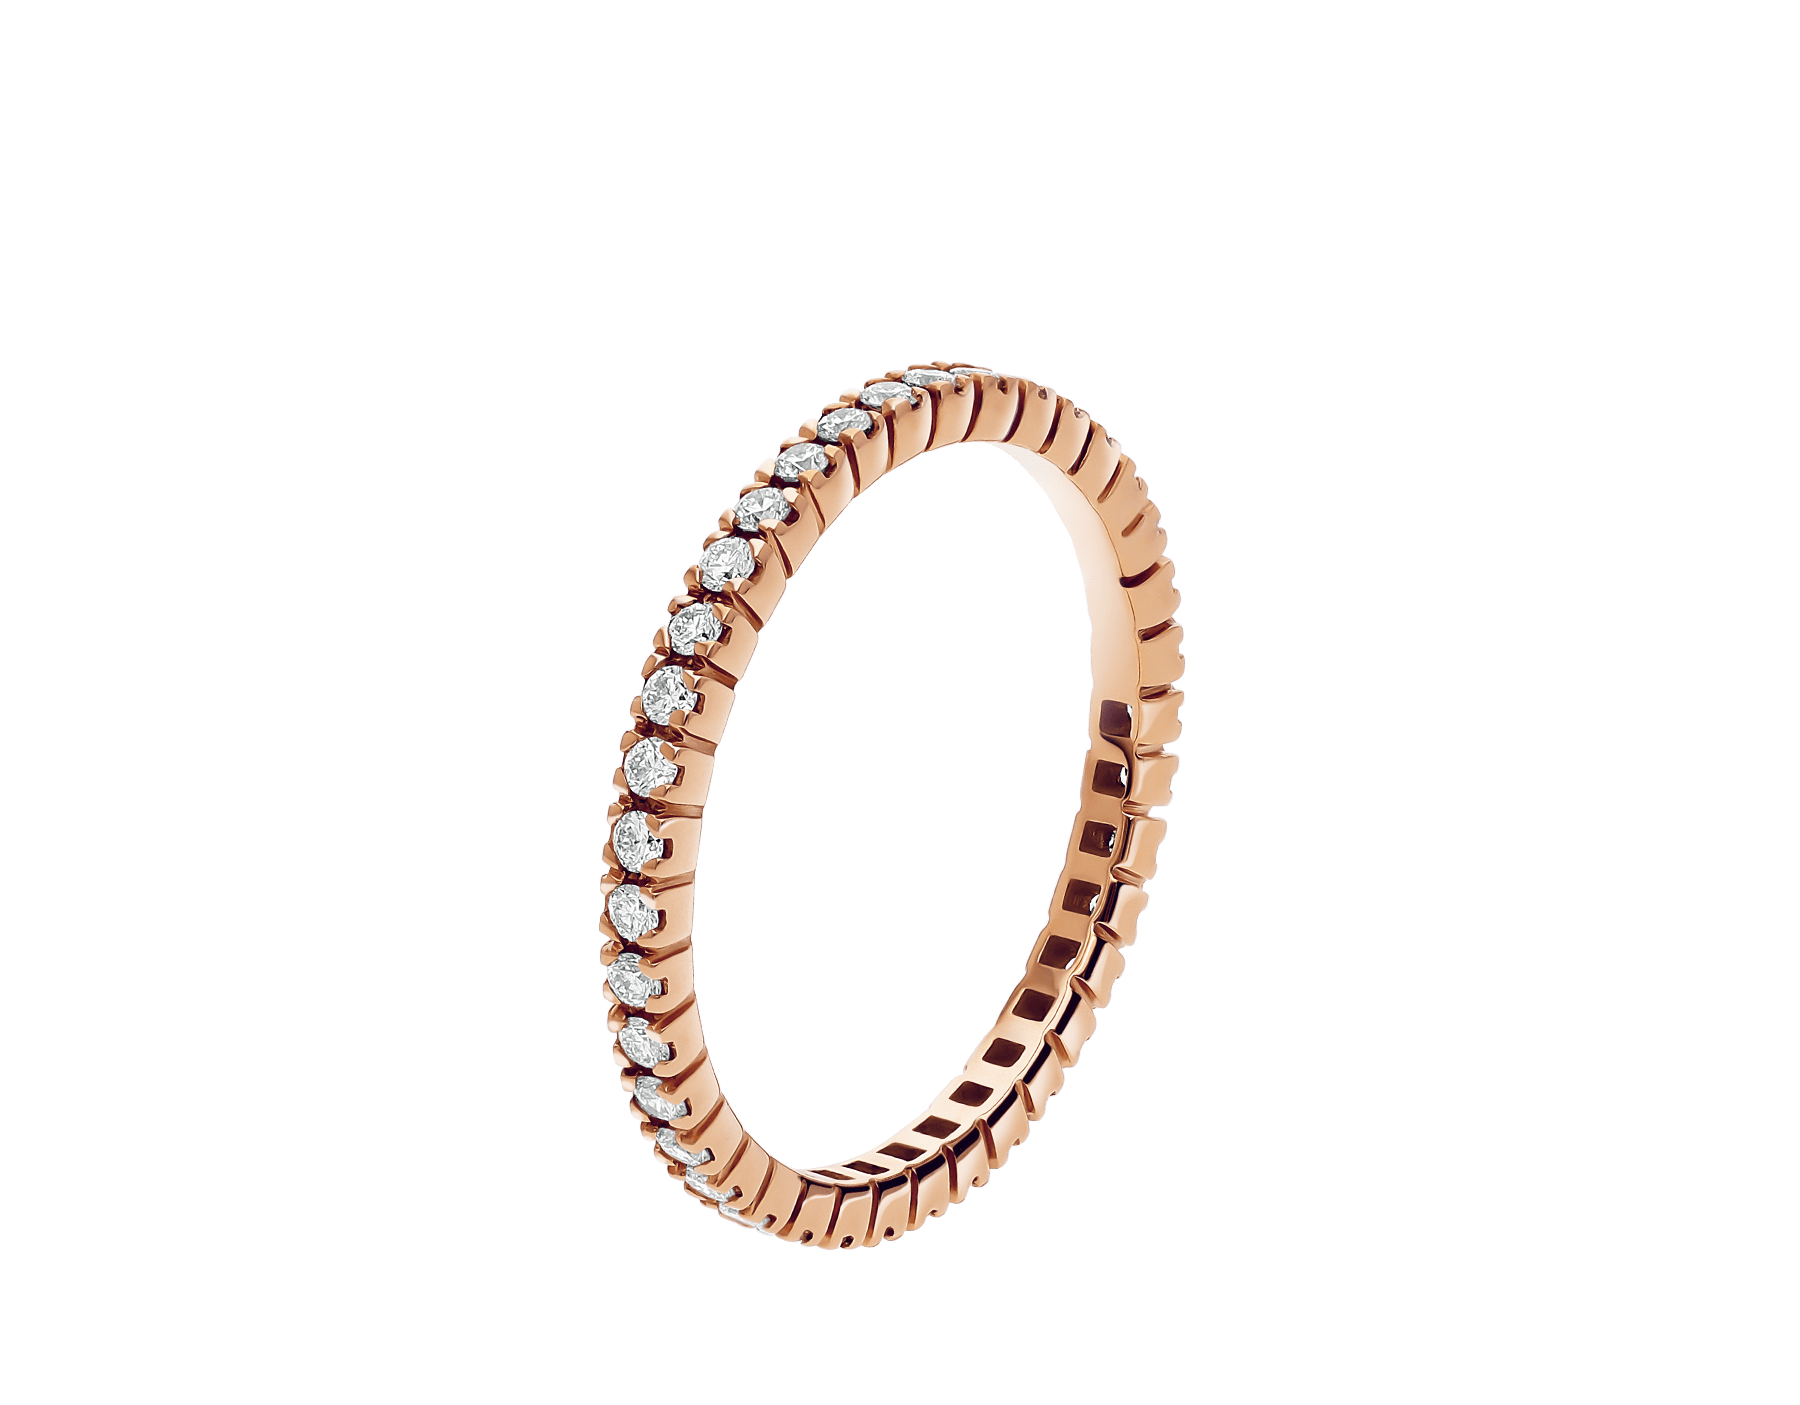 Eternity Band in thin size in 18 kt rose gold with round brilliant cut diamonds AN856428 image 1